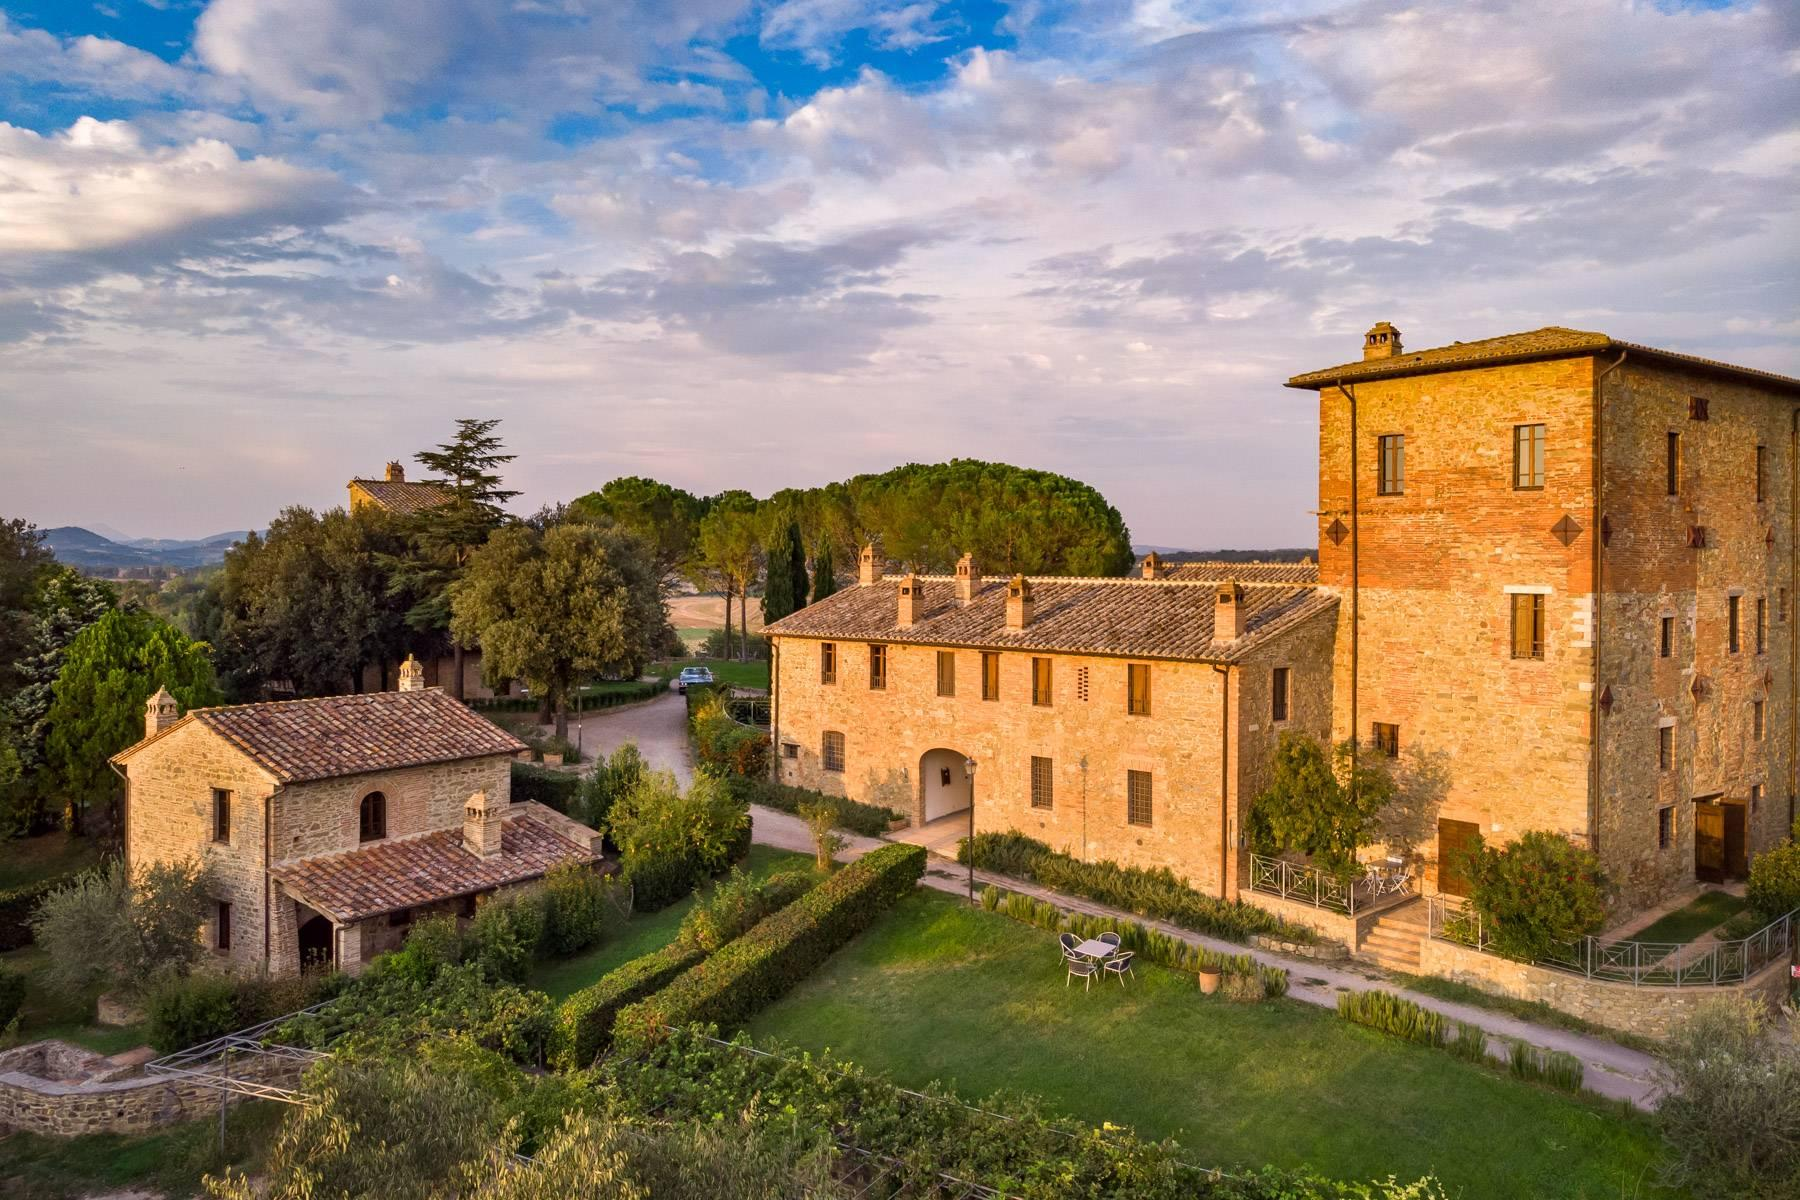 Magnificent castle in the heart of Umbria - 1